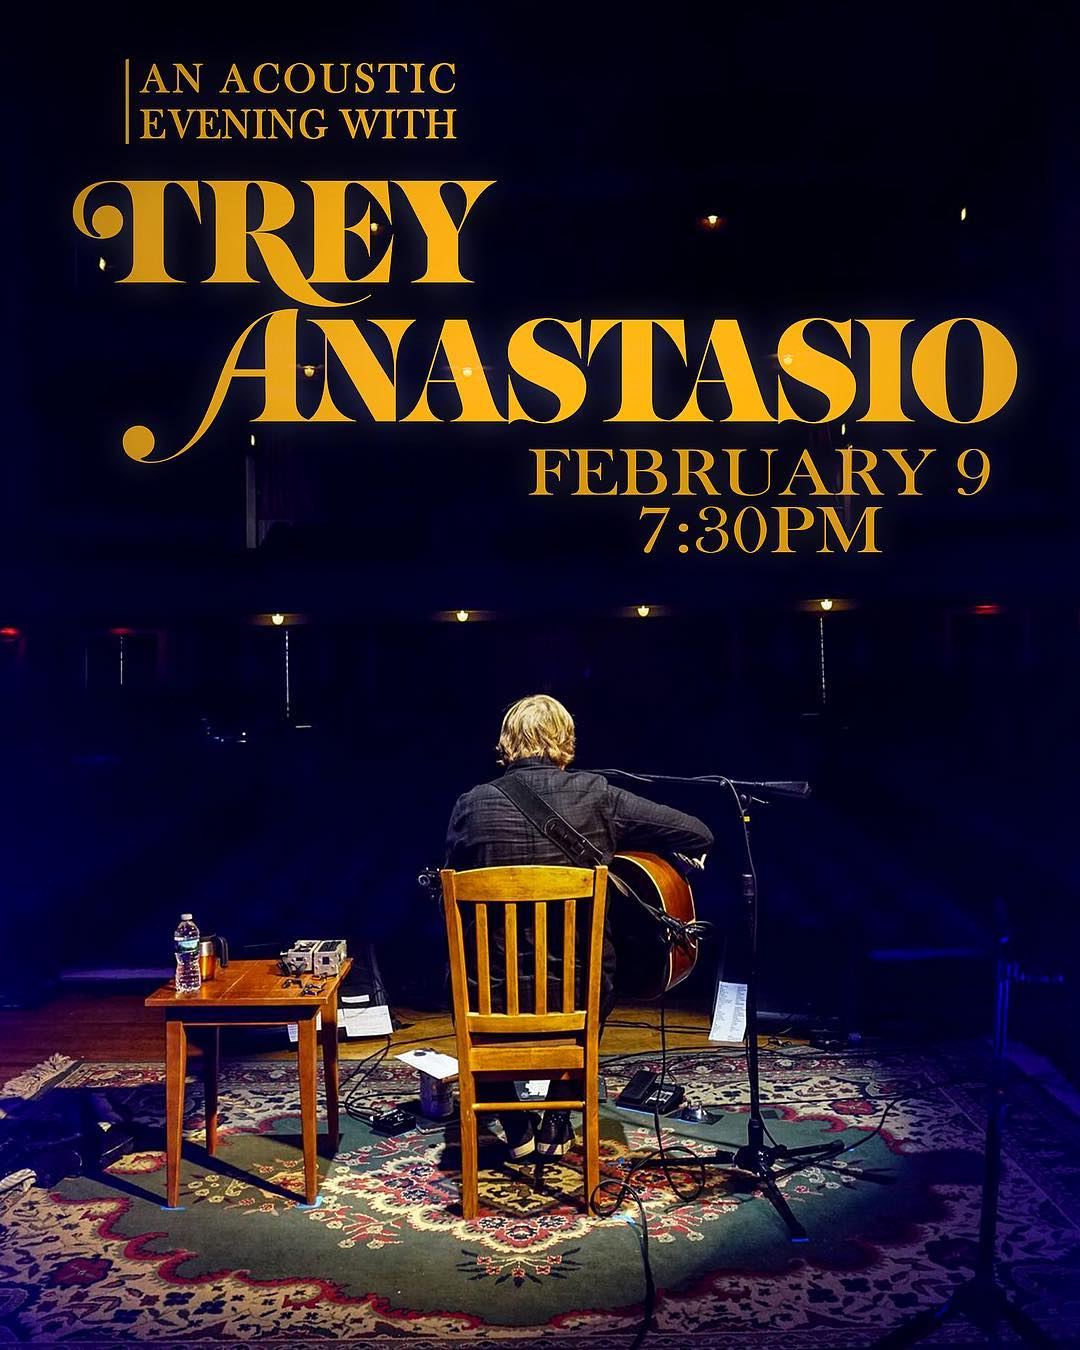 JUST ANNOUNCED dspshows Presents treyanastasio  Friday Feb 9 athellip